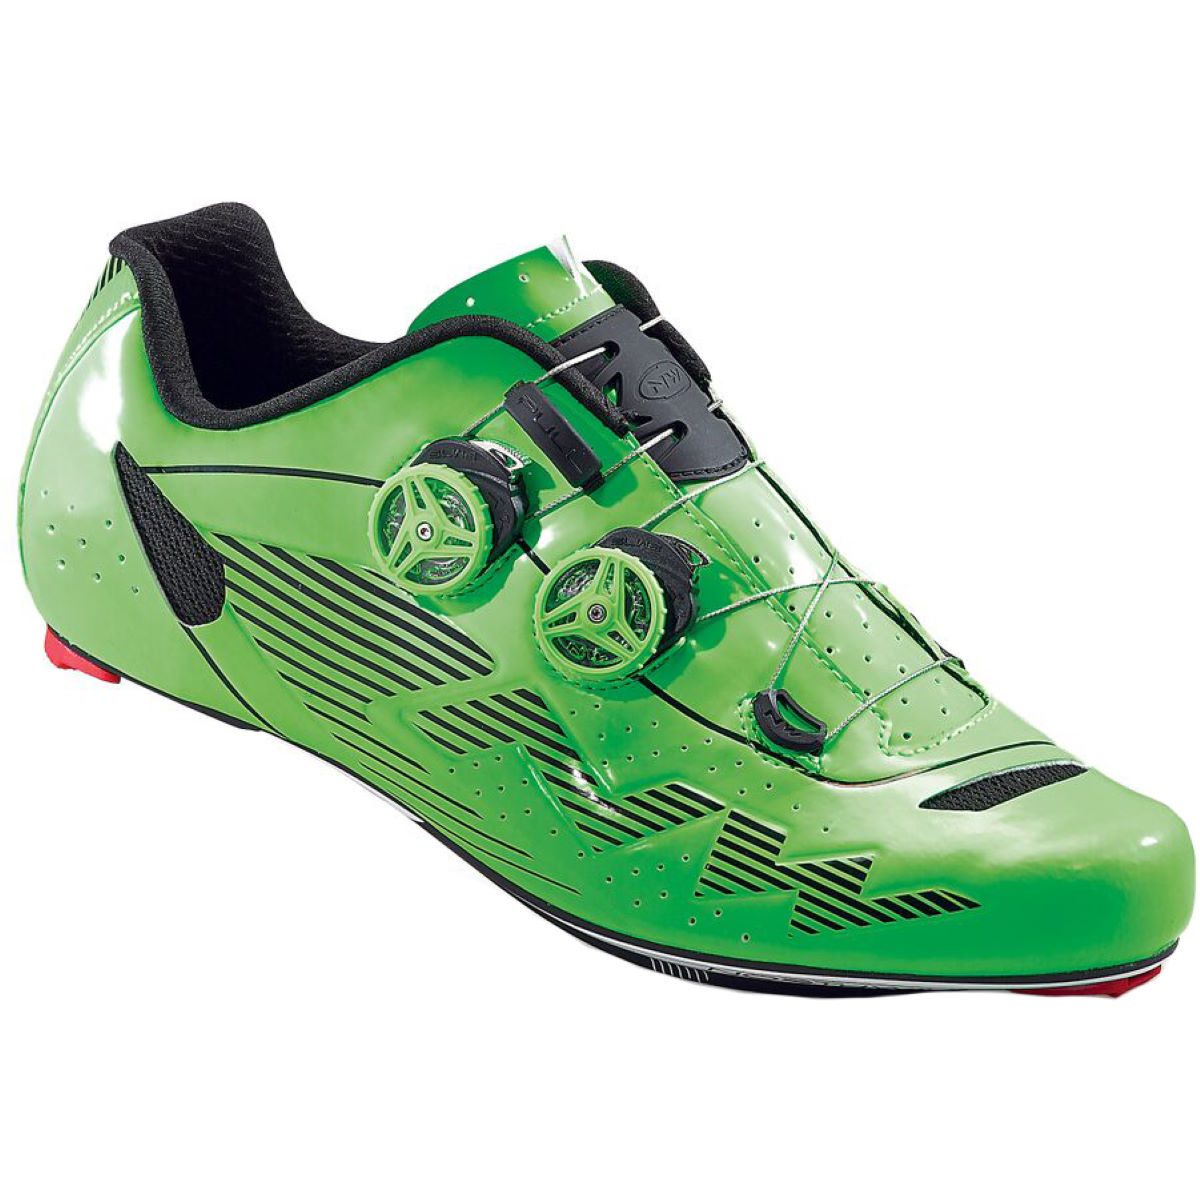 Northwave Evolution Plus Road Shoes - 48 Green Fluro | Road Shoes